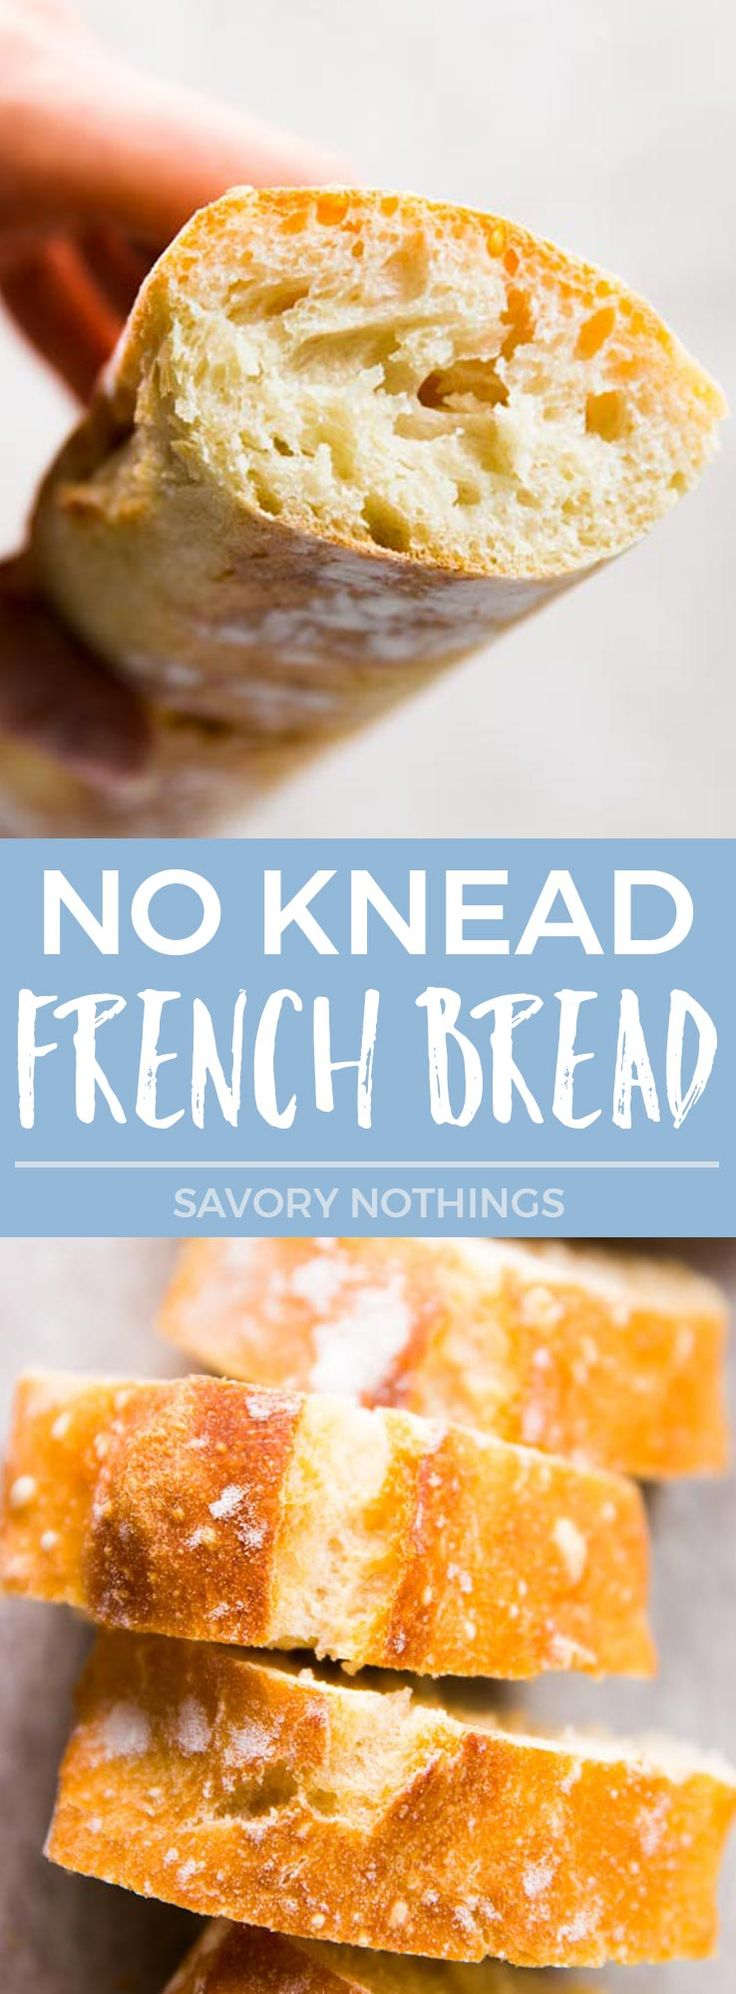 Now you can make crusty, artisan-like HOMEMADE French Bread from scratch with barely any effort! This is one of the best lazy cook's/baker's hack I've ever found - no kneading, no shaping, no overnight rise, and it comes out perfect every time with just 5 MINUTES PREP and about 10 minutes active time in total! | Posted By: DebbieNet.com